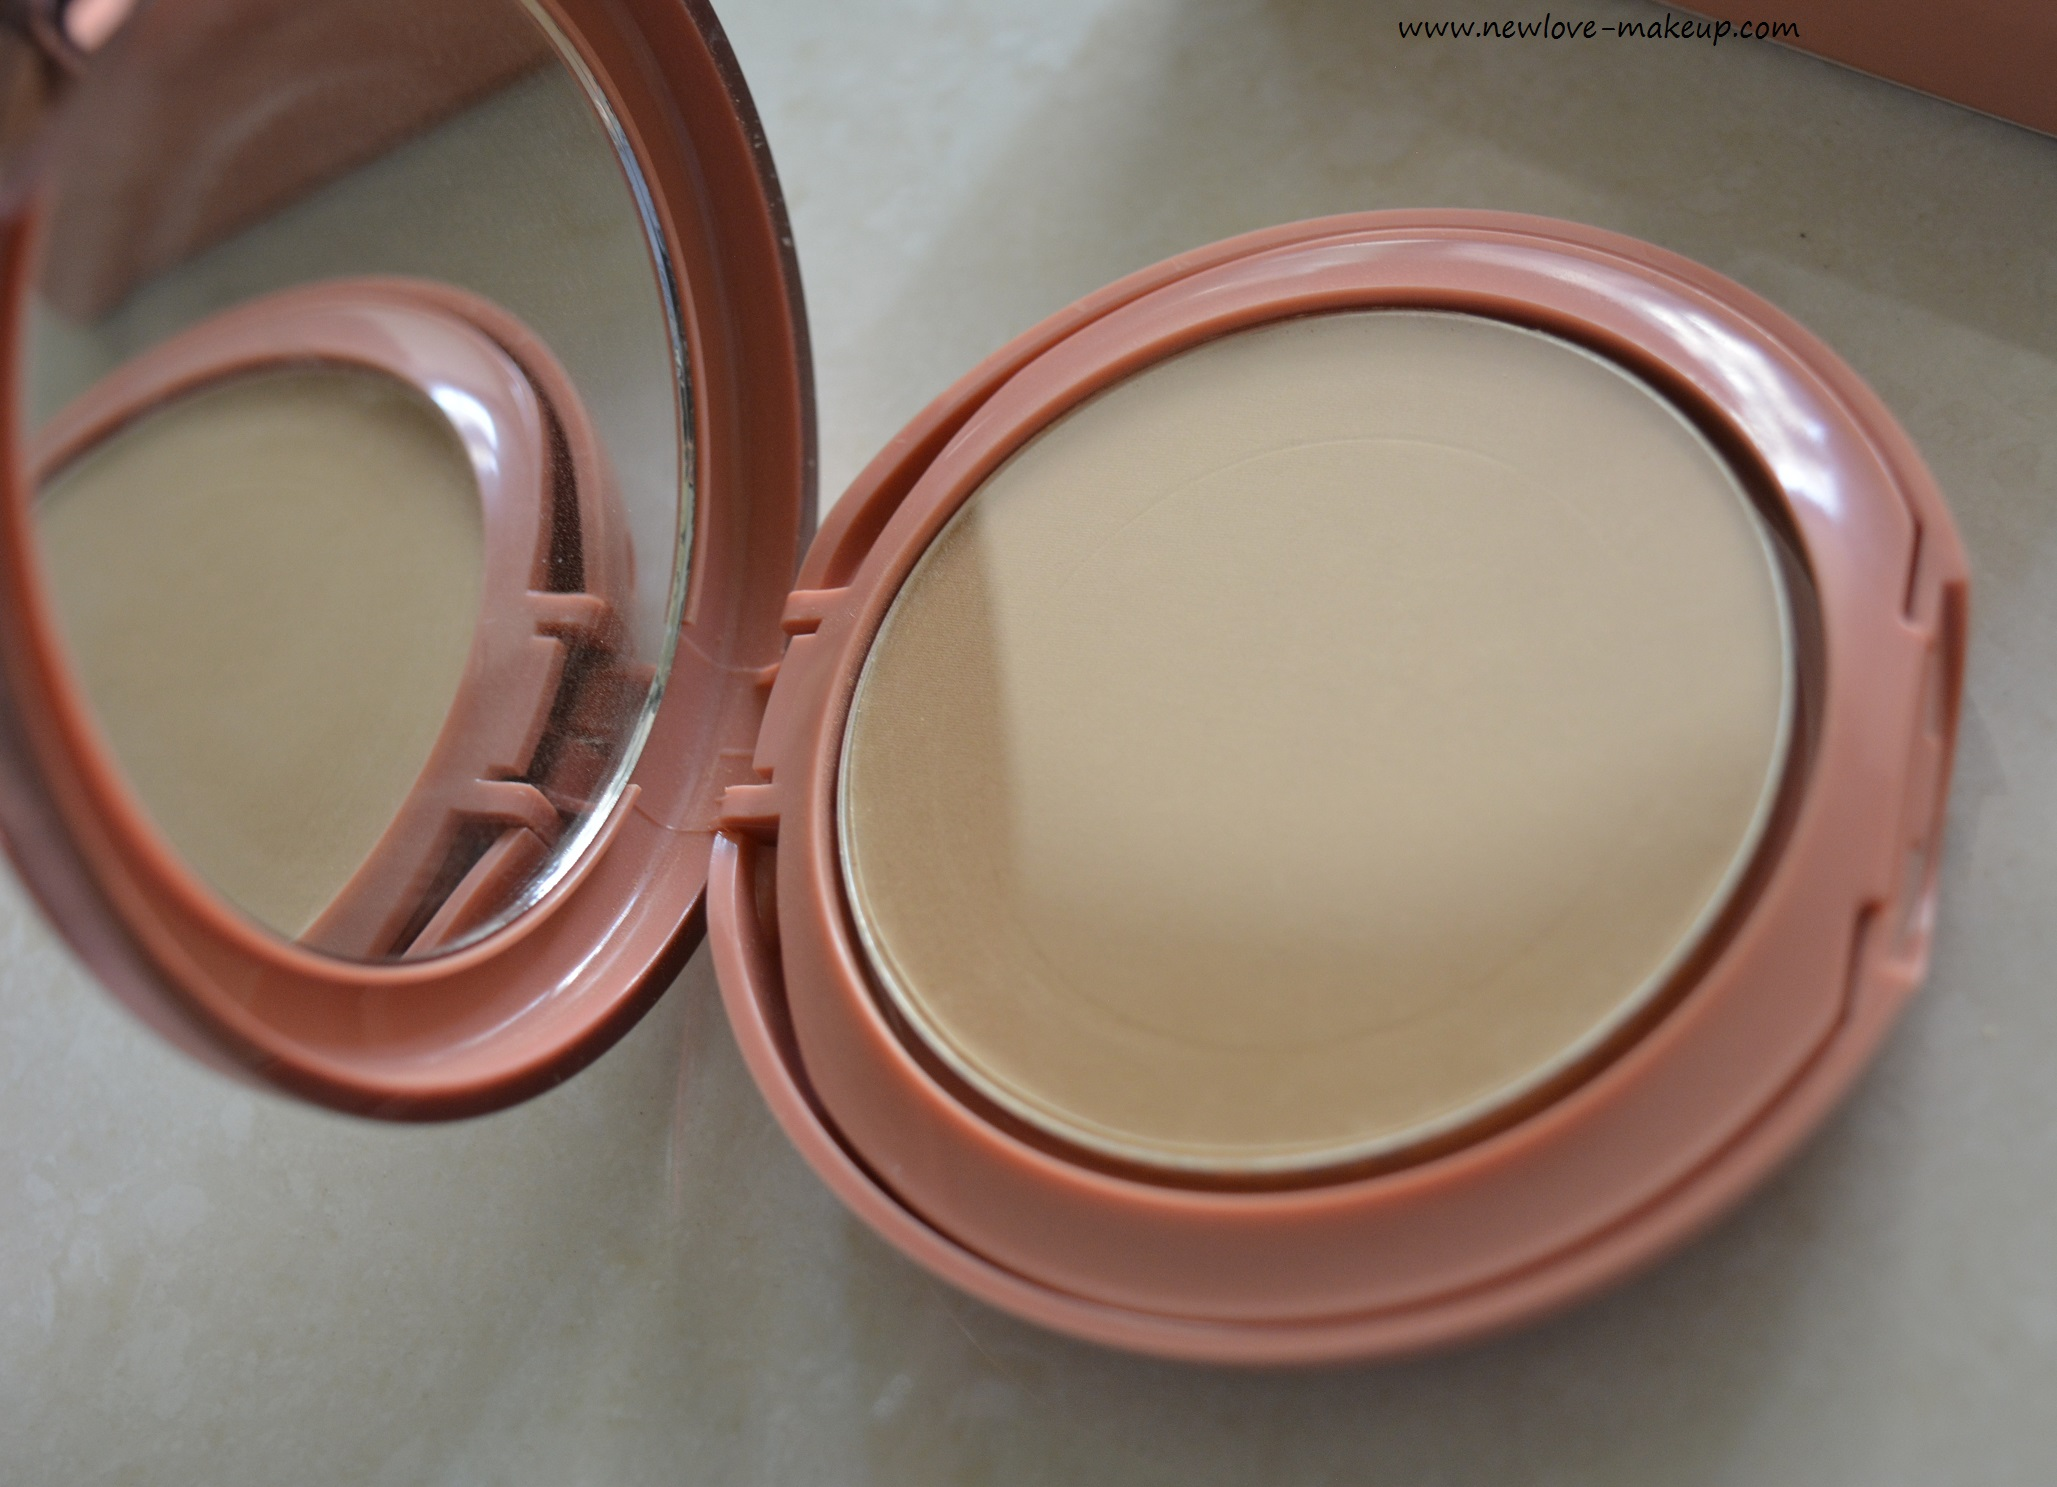 Lakme 9 to 5 Primer + Matte Powder Foundation Review, Swatches